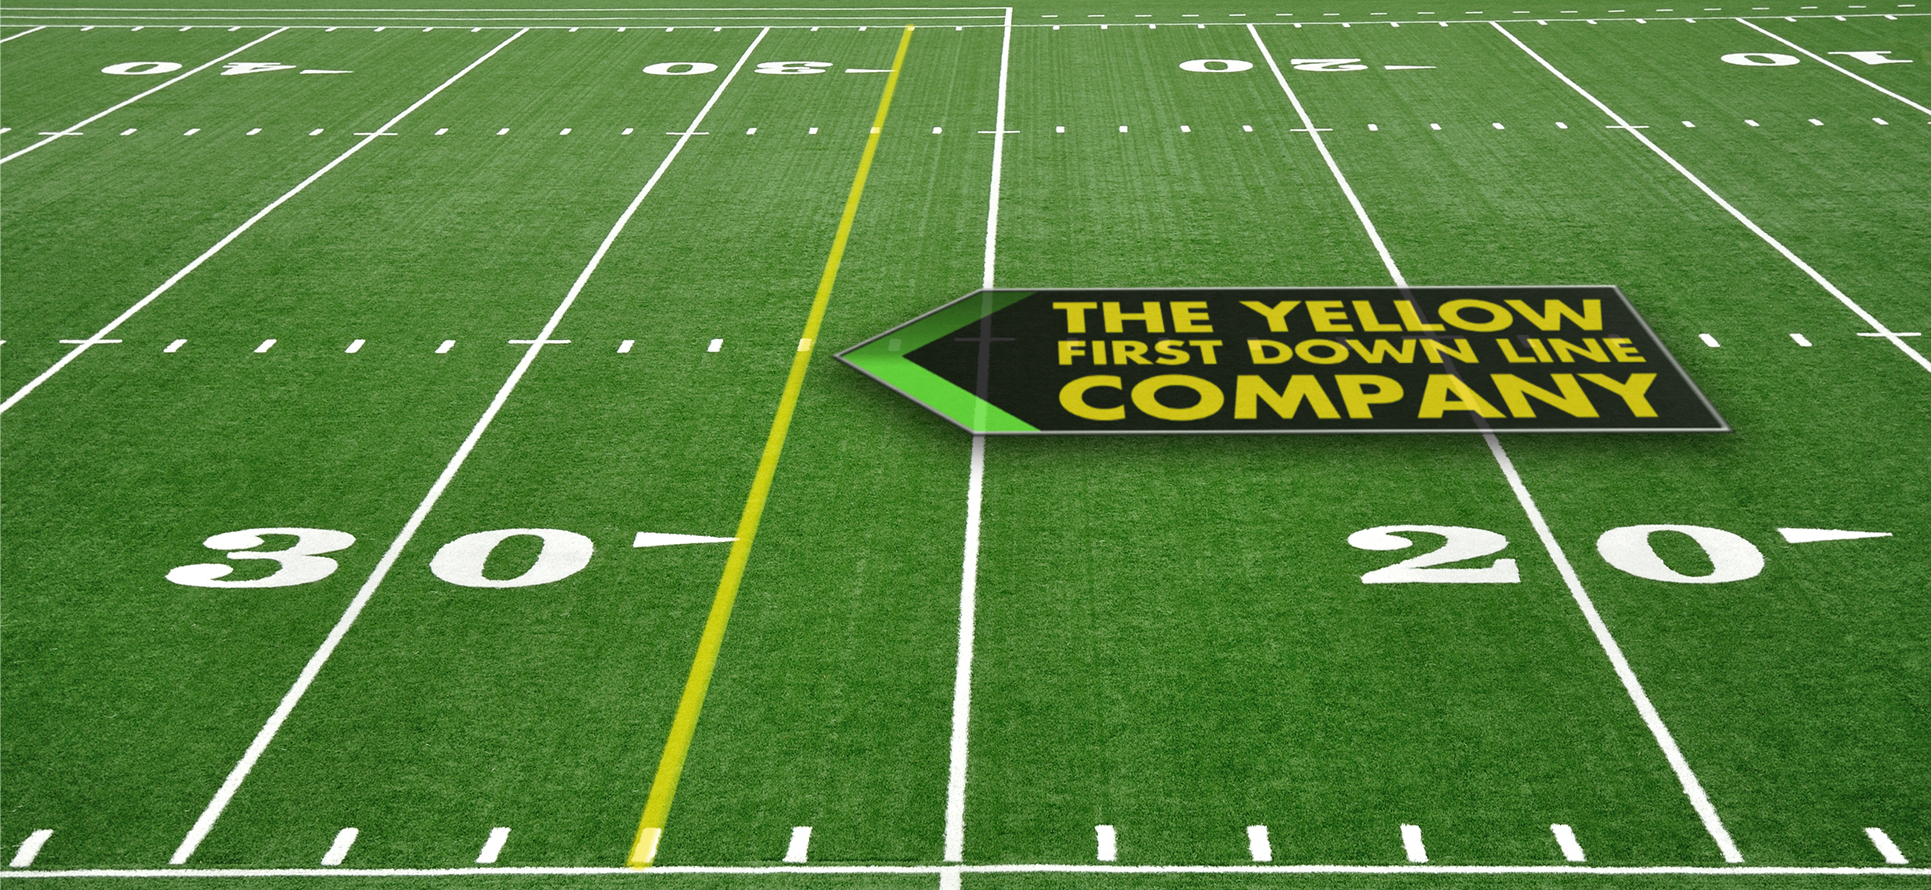 The Yellow First Down Line Company